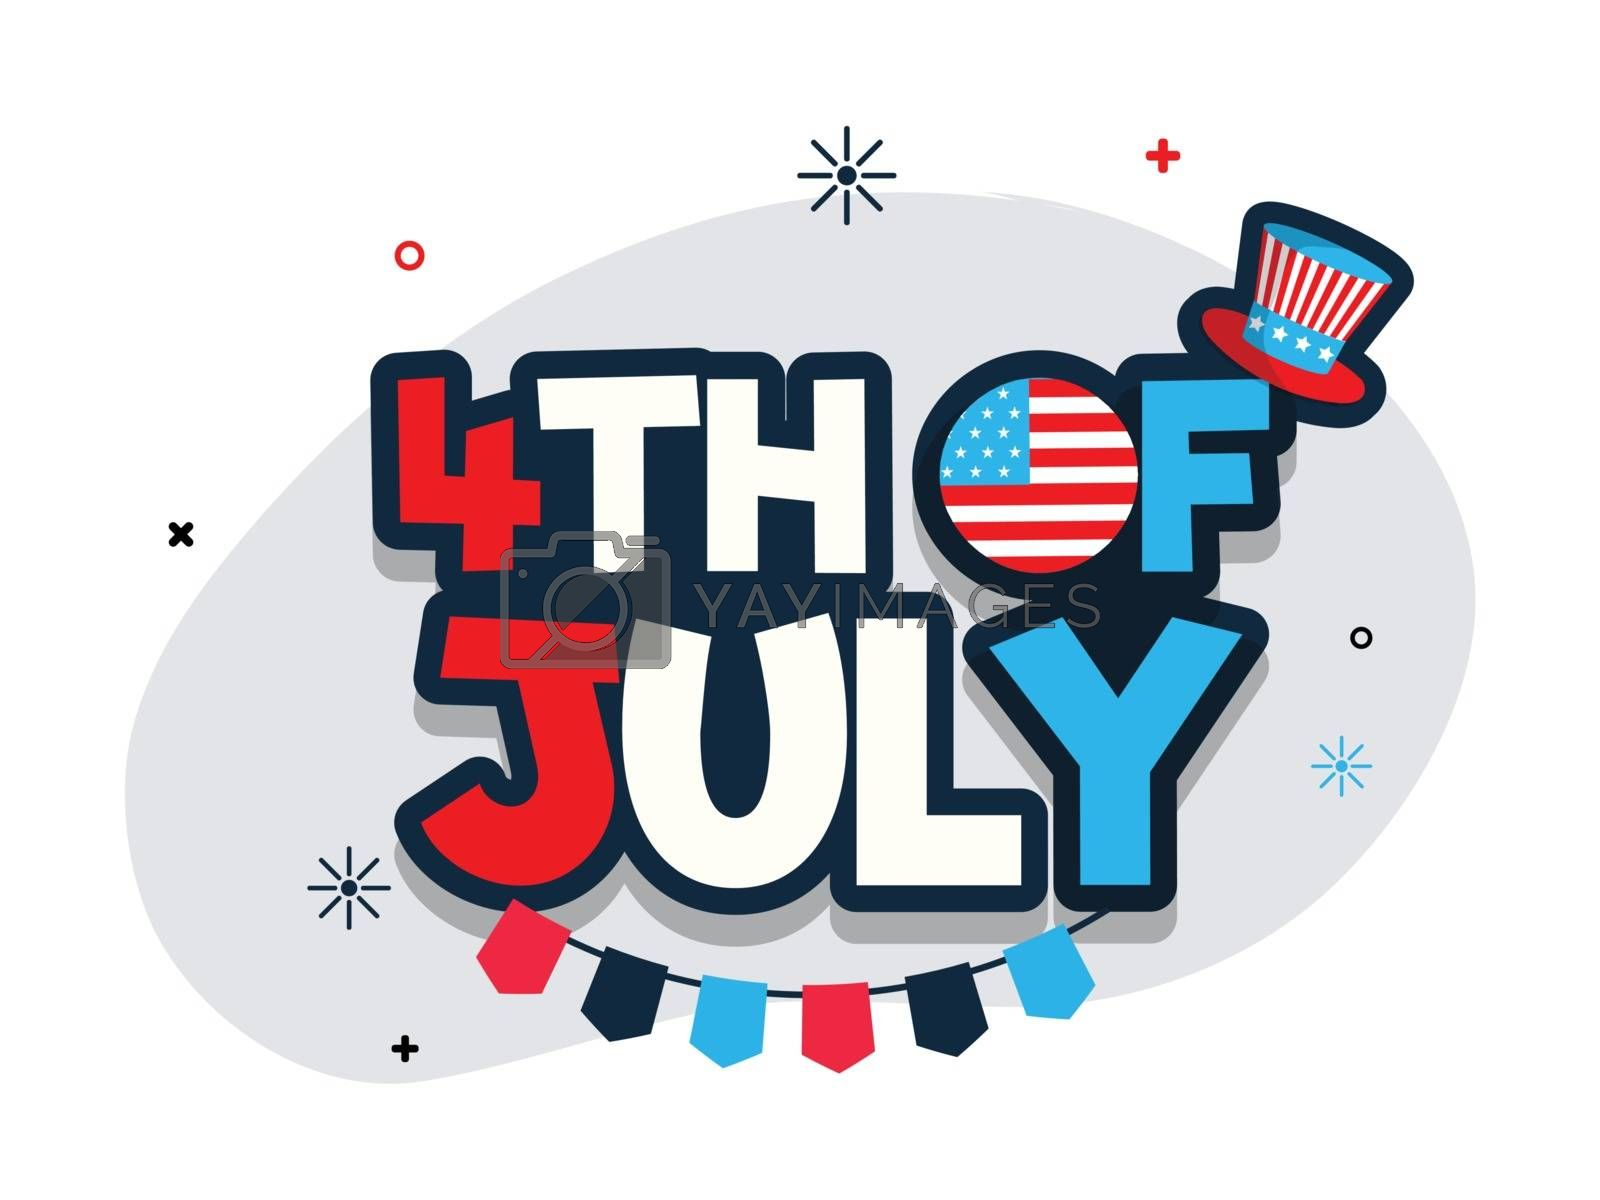 Flat style text 4th Of July with uncle sam hat for Independence Day banner or poster design.